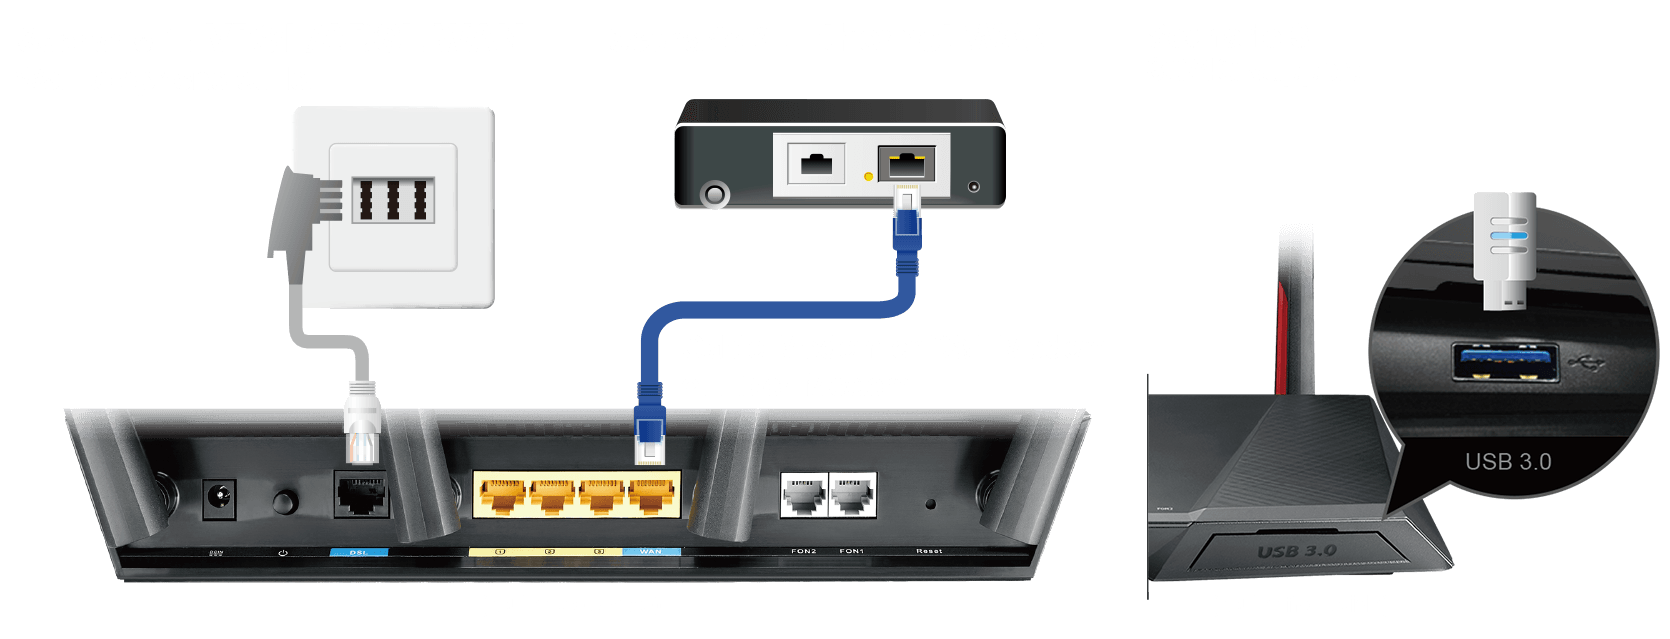 DSL-AC68VG supports multiple internet connections of DSL, Ethernet or 3G/4G LTE and able to switch between if one fails.